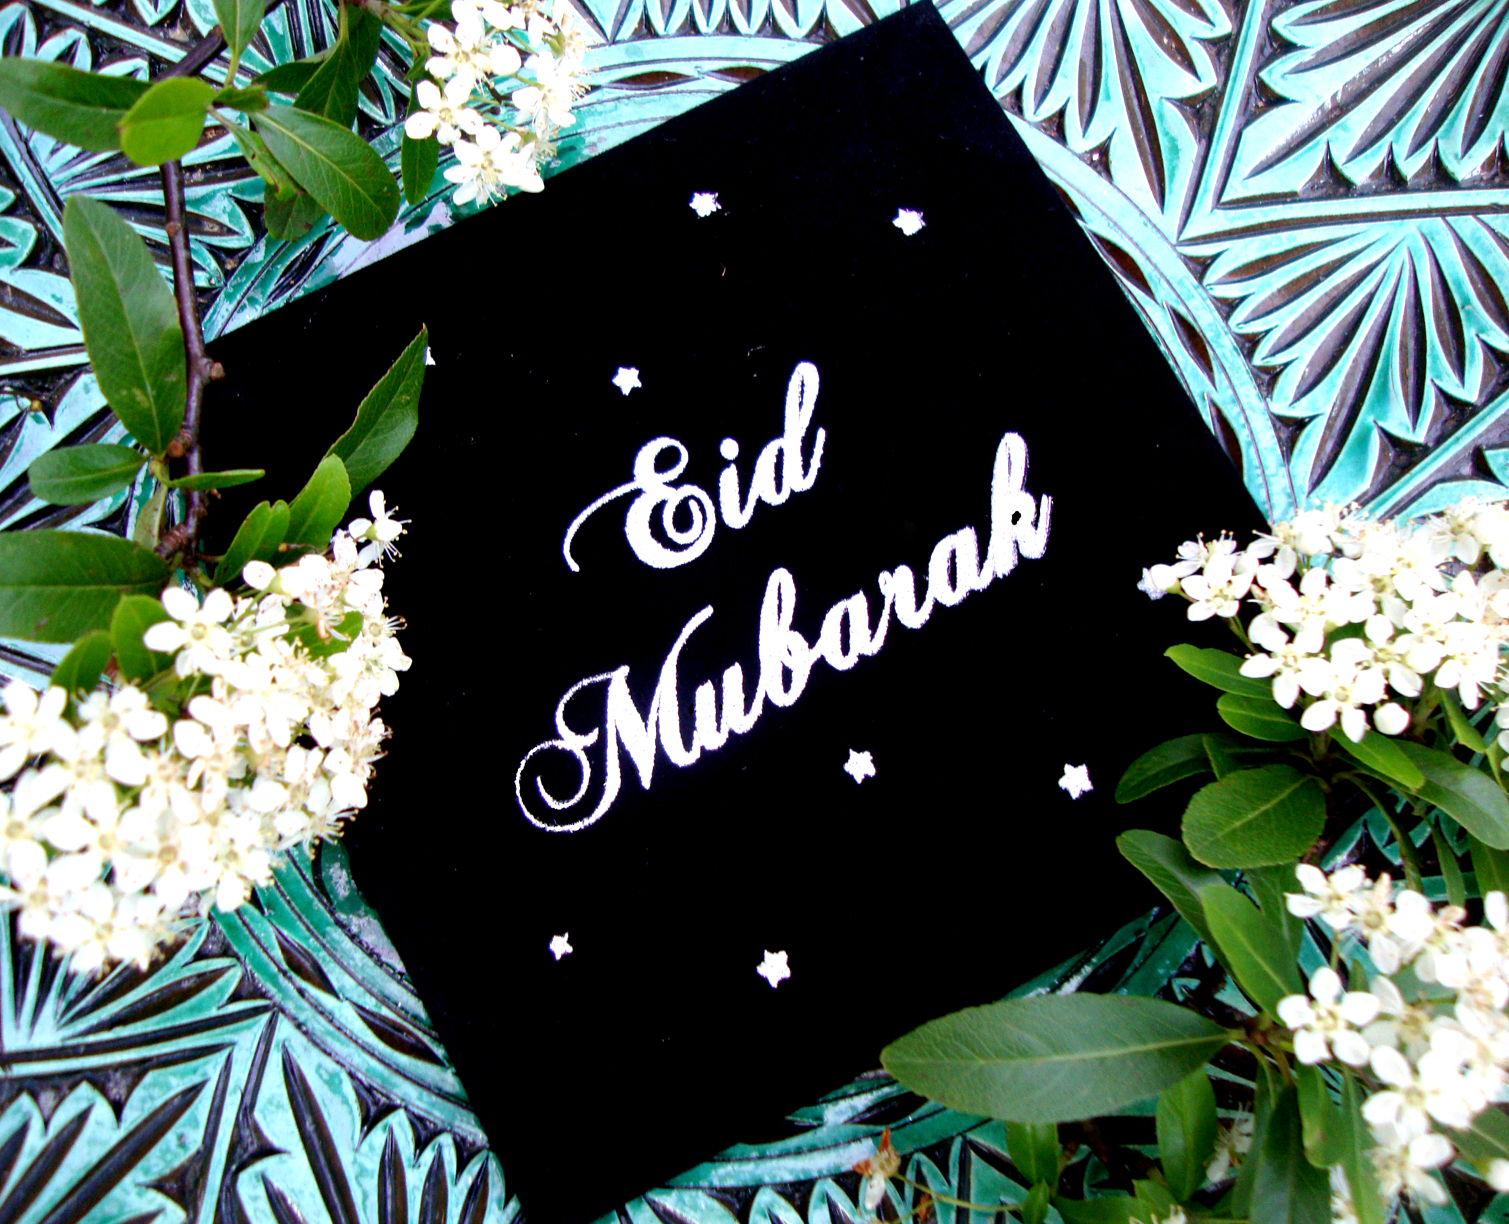 Eid Mubarak Wallpapers, Images, Pictures